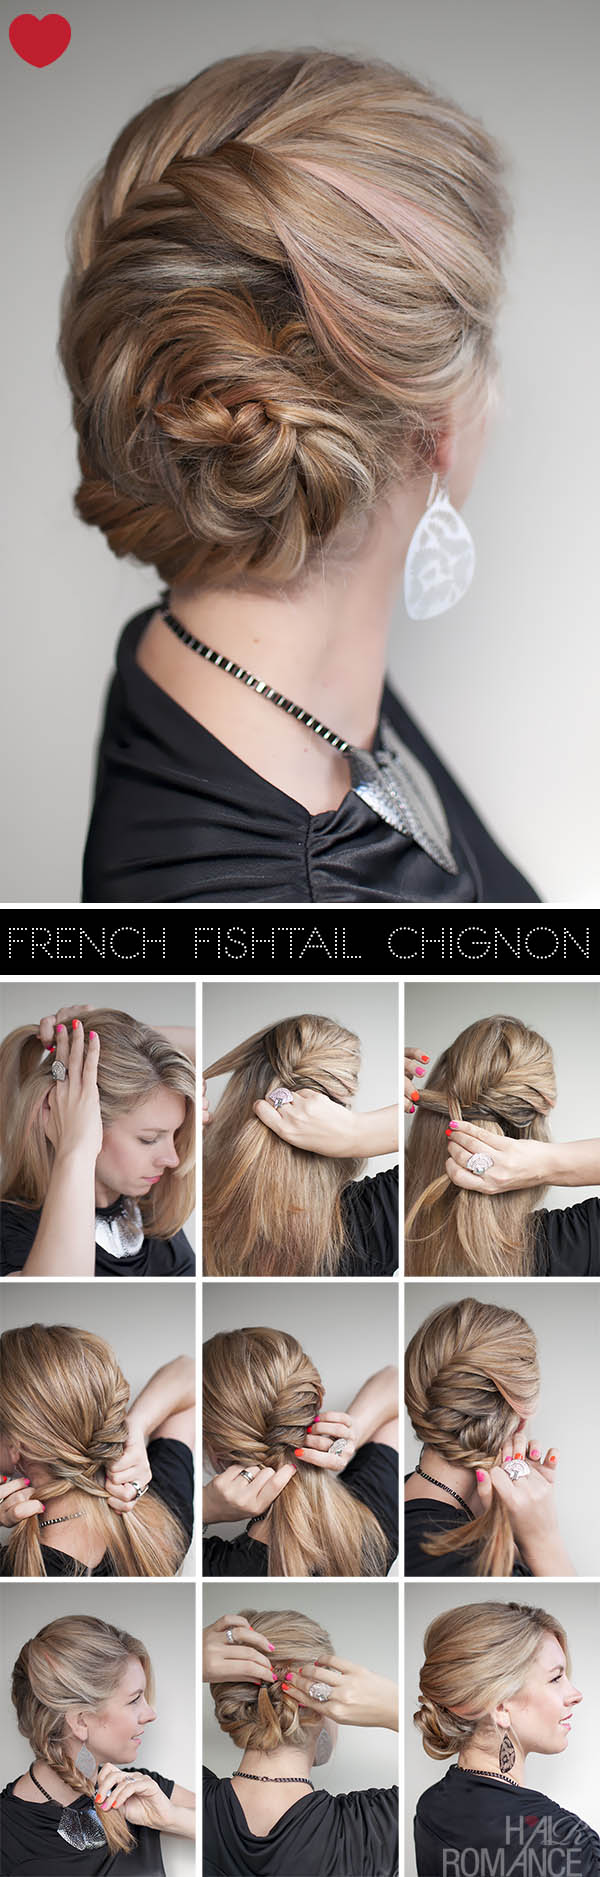 Hairstyle tutorial - French fishtail braid chignon - Hair ...